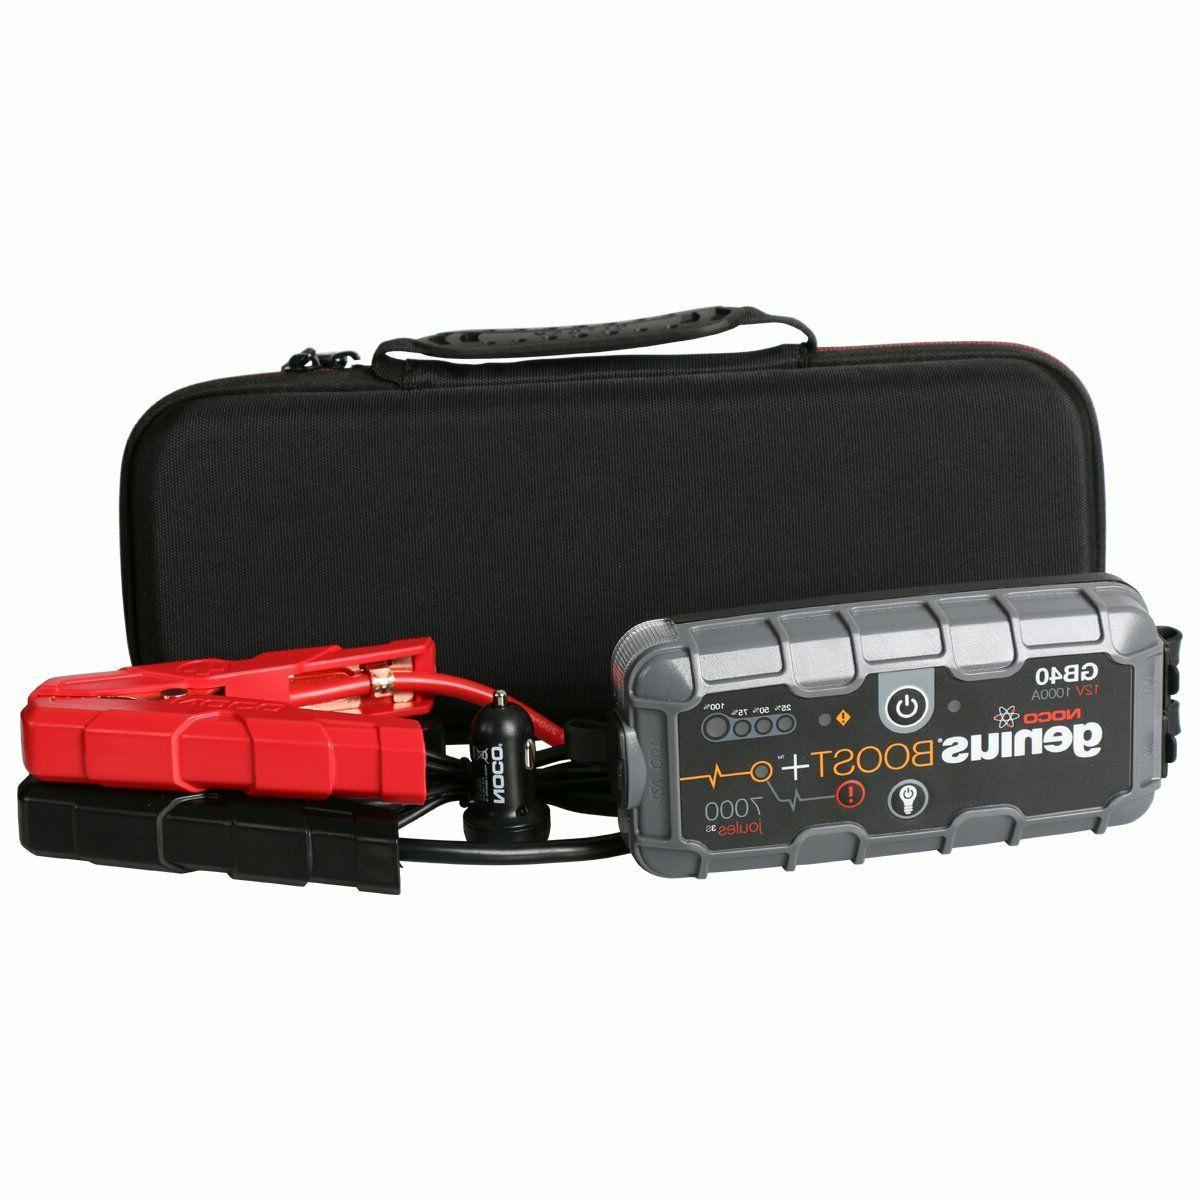 NOCO Battery Jump Charger Amp UltraSafe